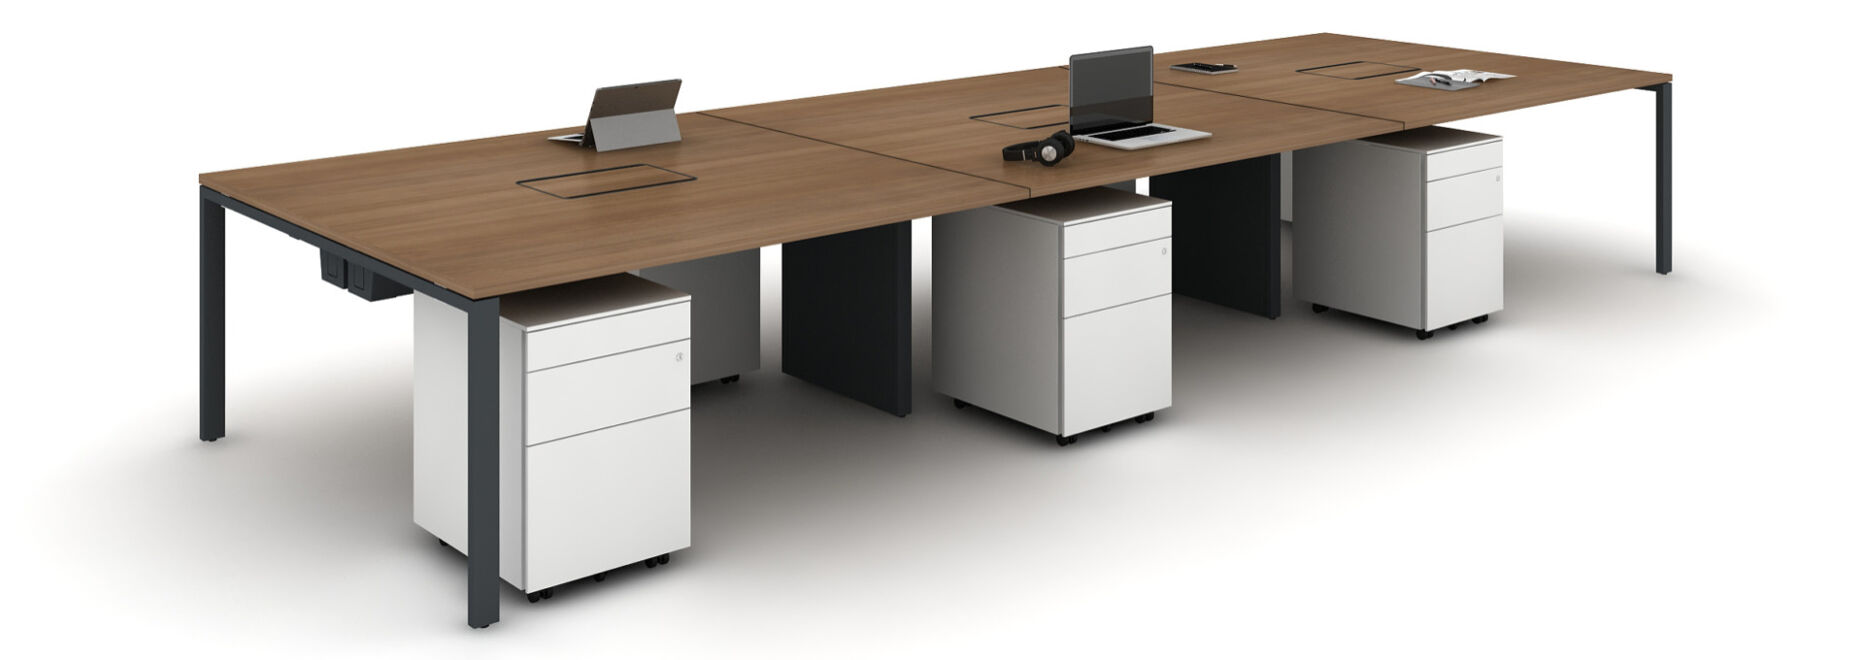 products tibas render